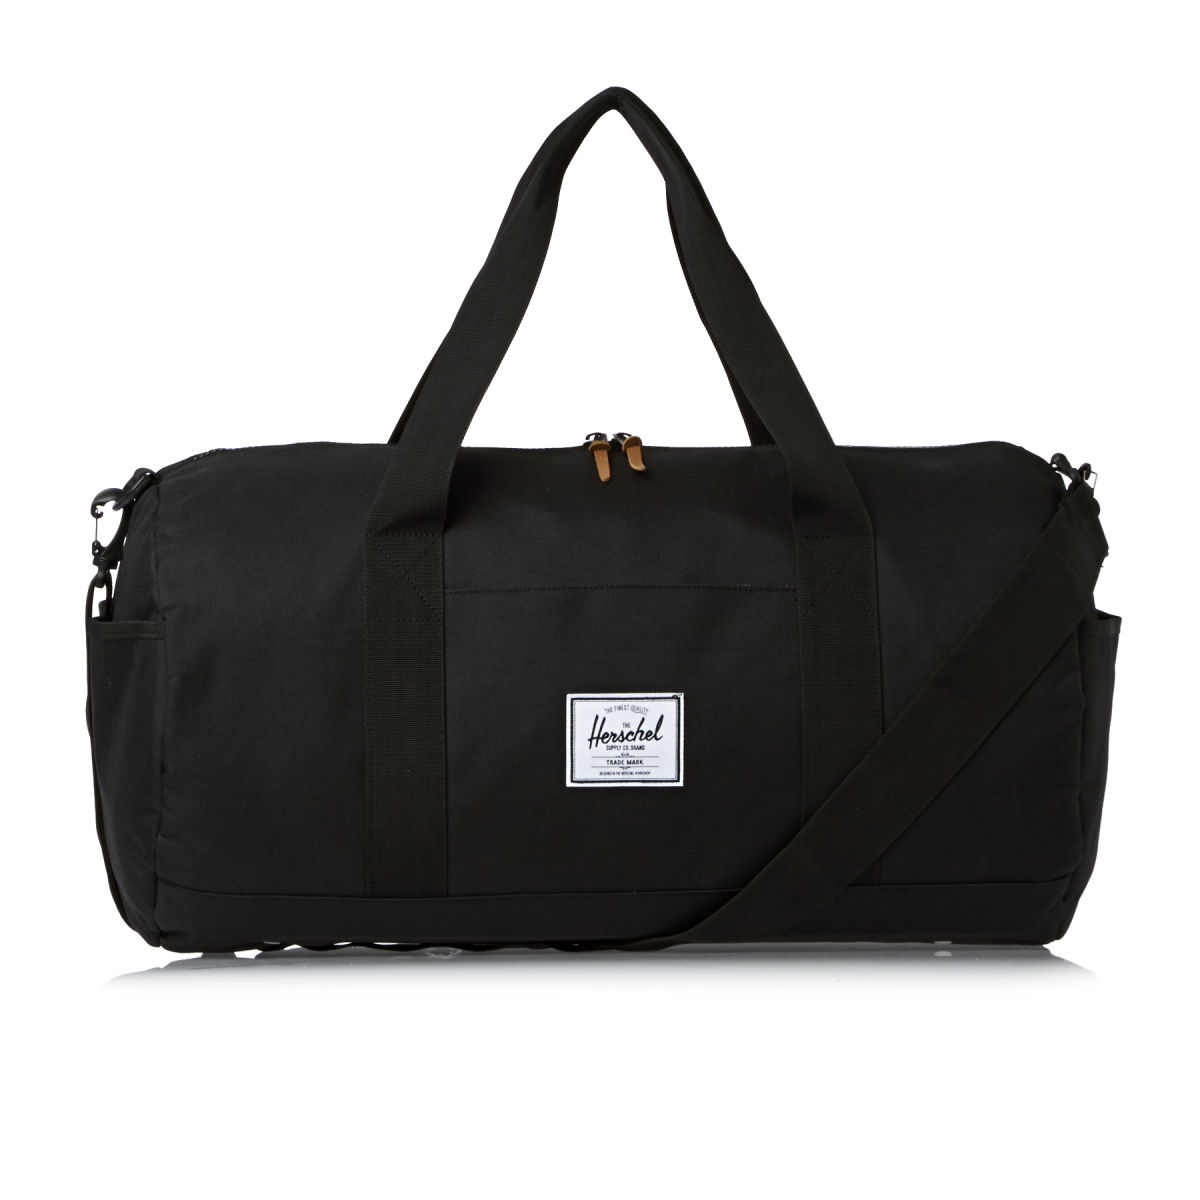 Gym Bag Herschel: Sabis Bulldog Athletics